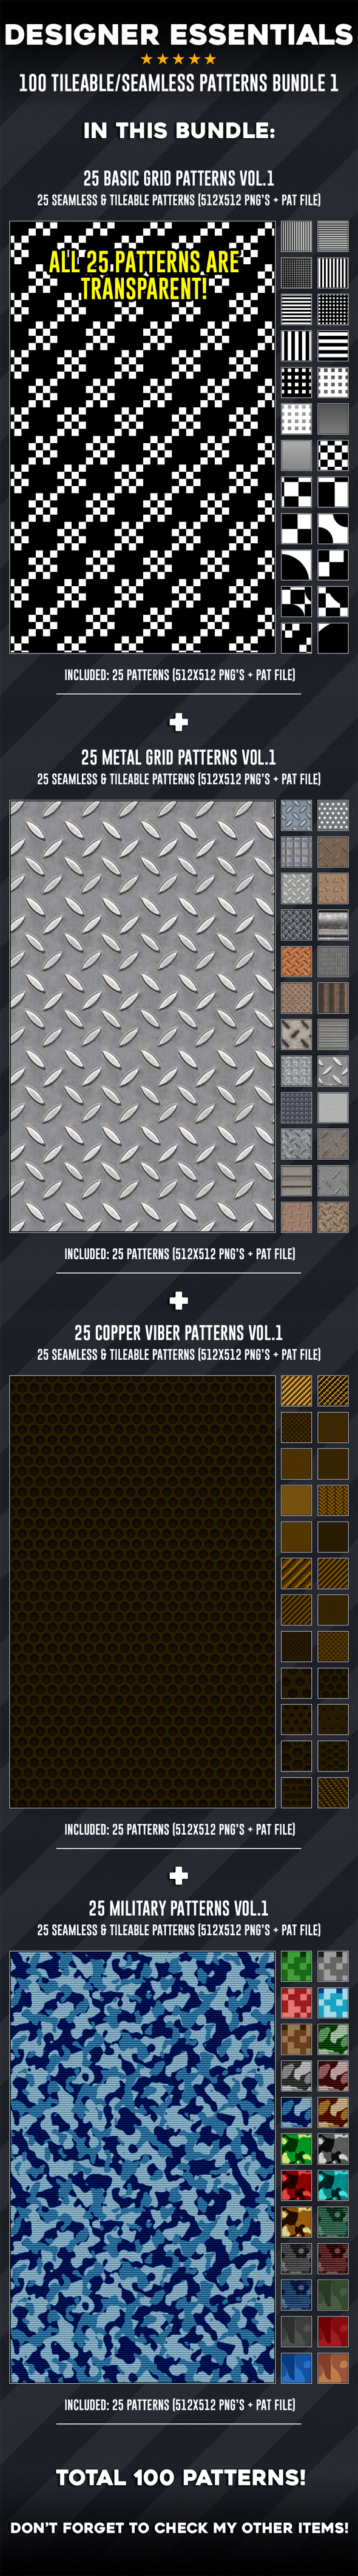 100 Tileable / Seamless Patterns Bundle Vol.1 - Miscellaneous Textures / Fills / Patterns